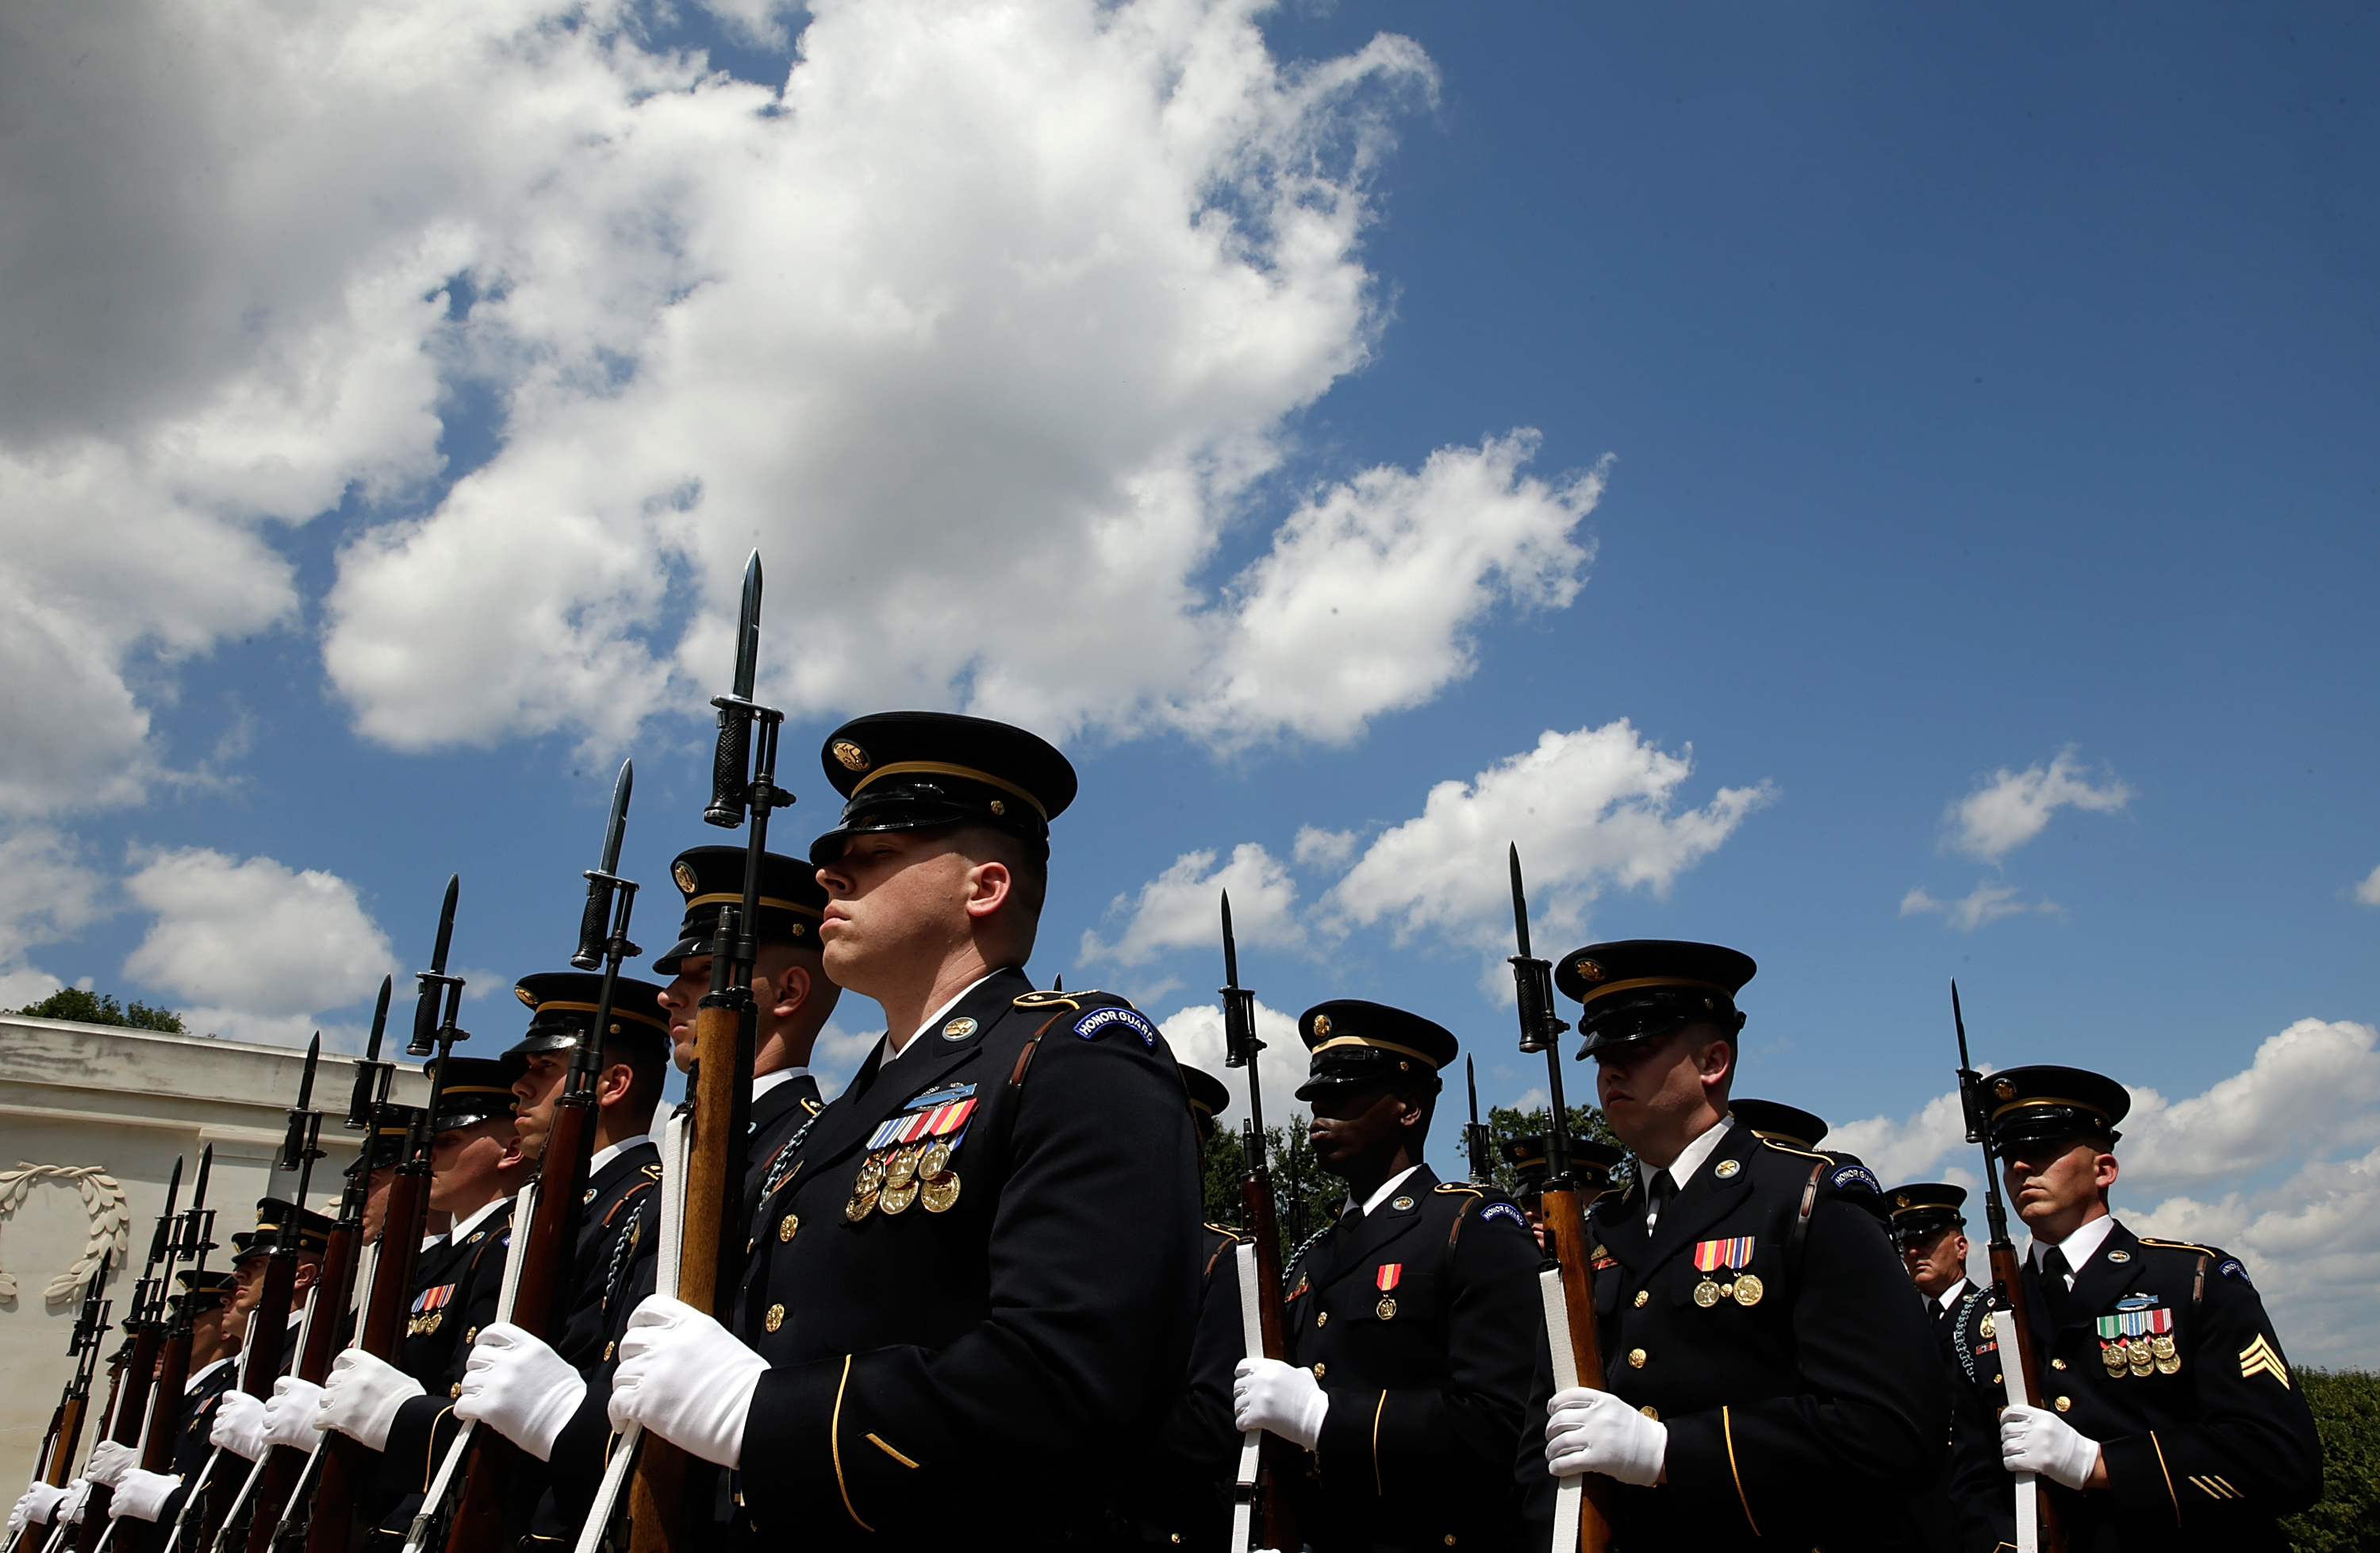 Members of the U.S. Army's  Old Guard take part in a wreath laying ceremony at the Tomb of the Unknown Soldier at Arlington National Cemetery in Va. on June 13, 2013.